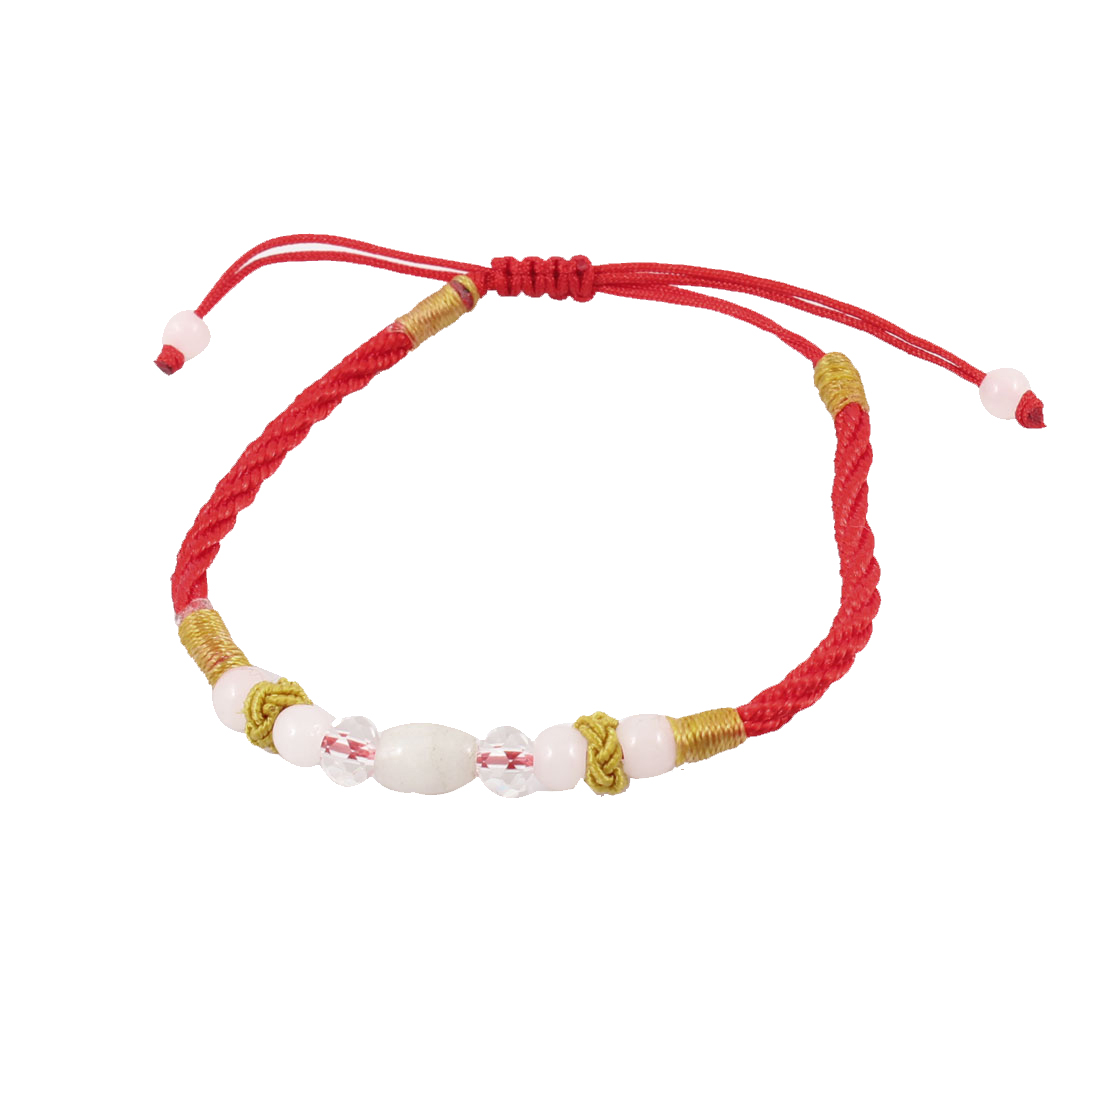 Knitted String Faux Crystal Beads Decor Bracelet Chain Red White for Girls